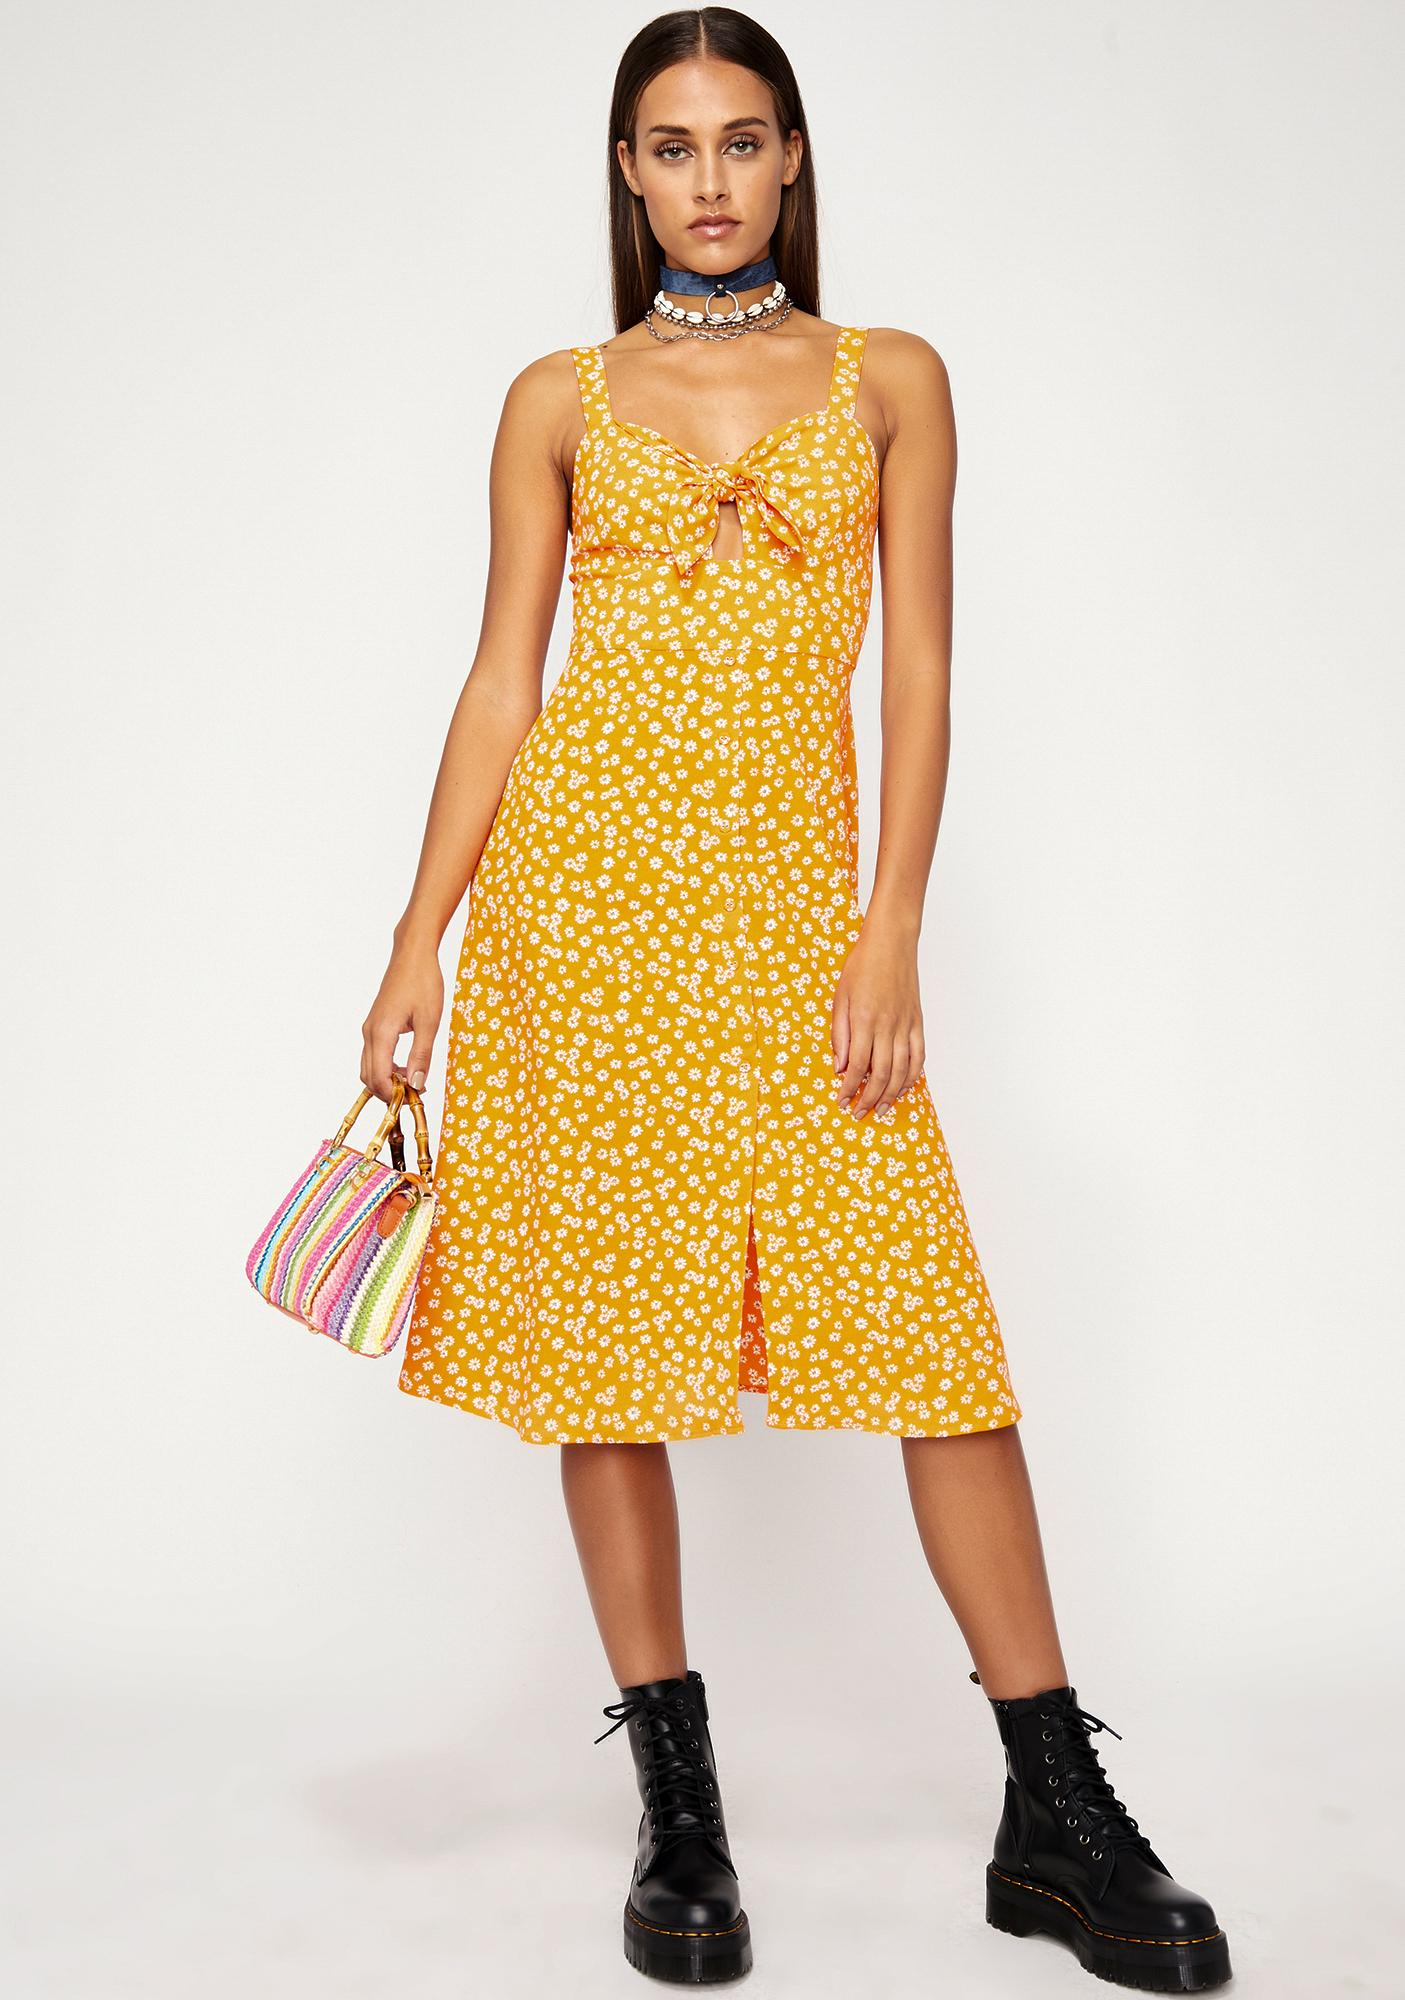 Honey Tangerine Floral Dress